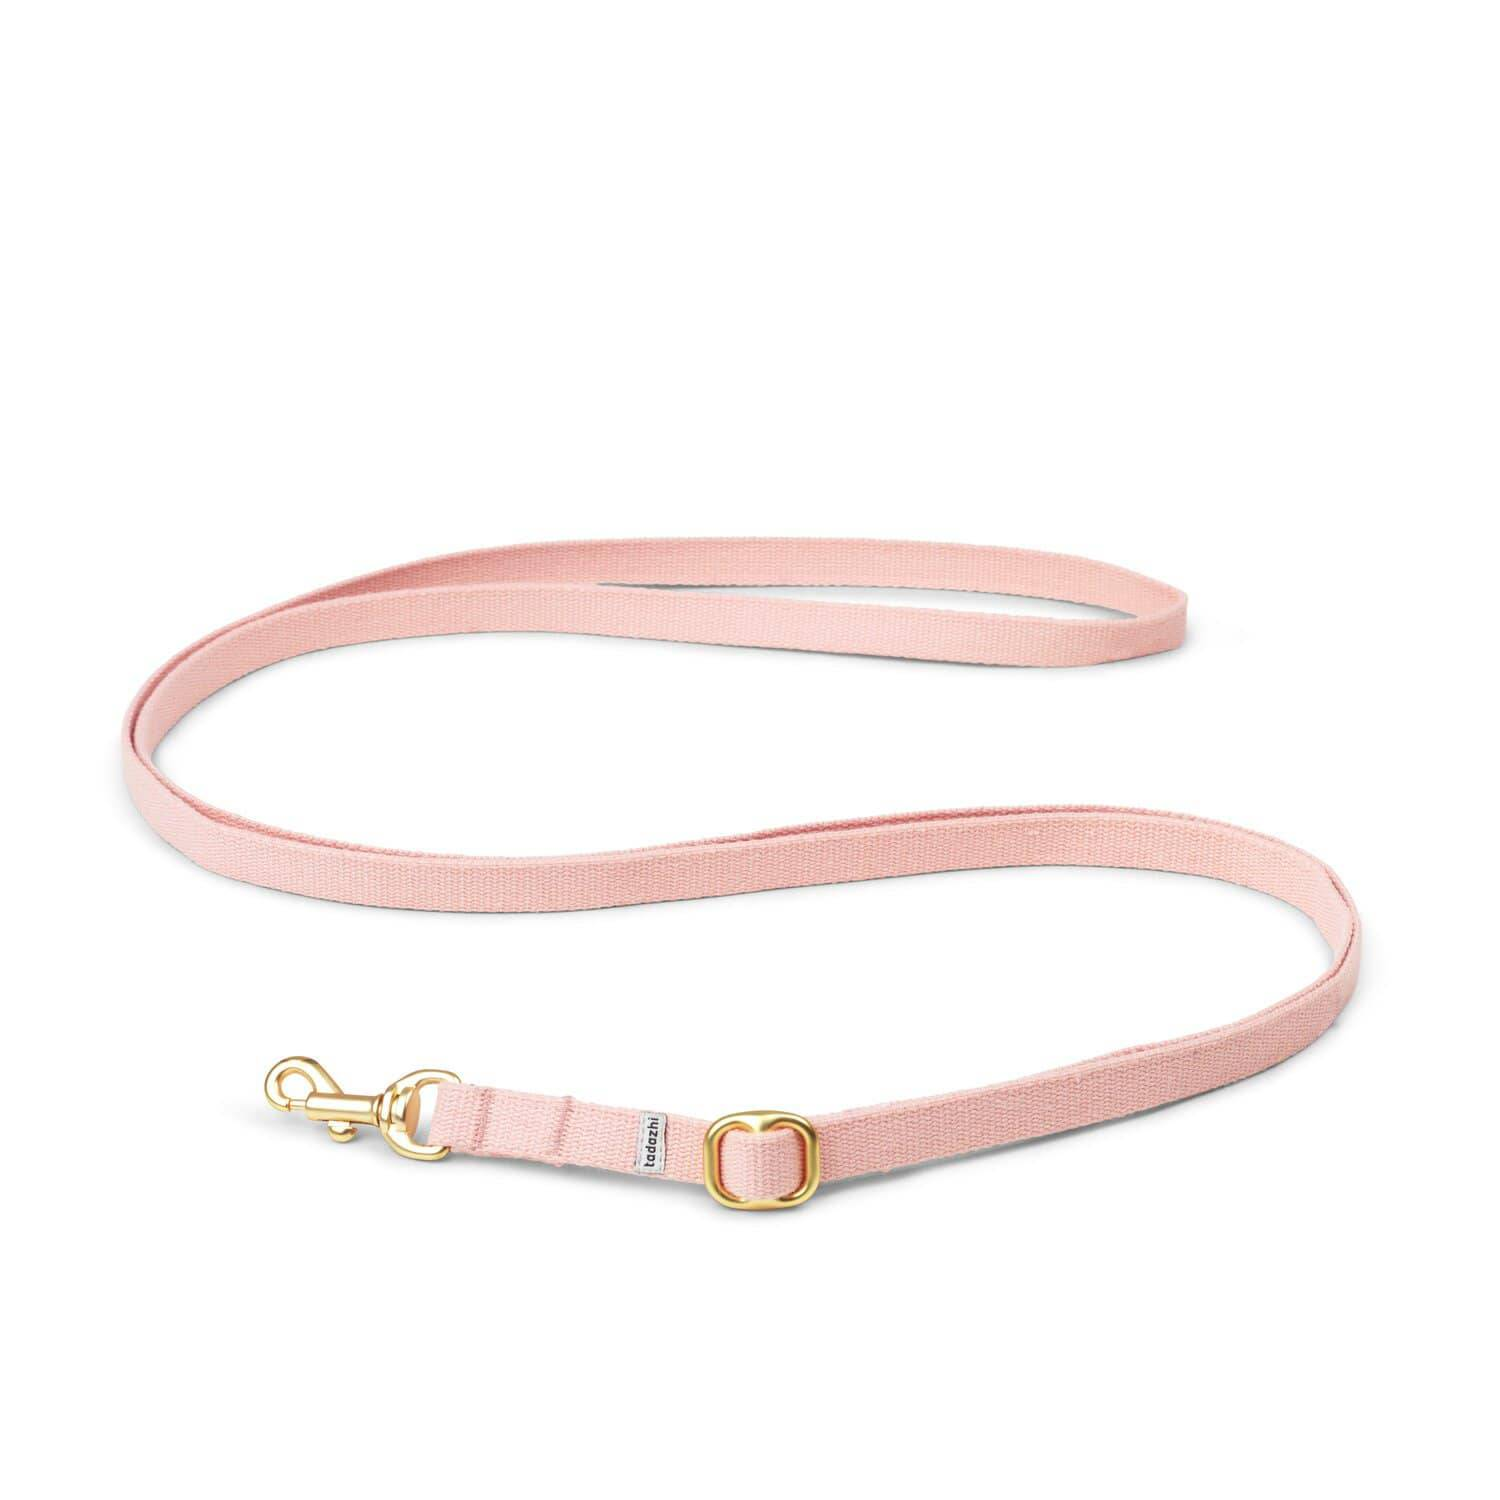 Powder Pink - Adjustable Cotton Lead & Solid Brass Hardware - [Holler Brighton]